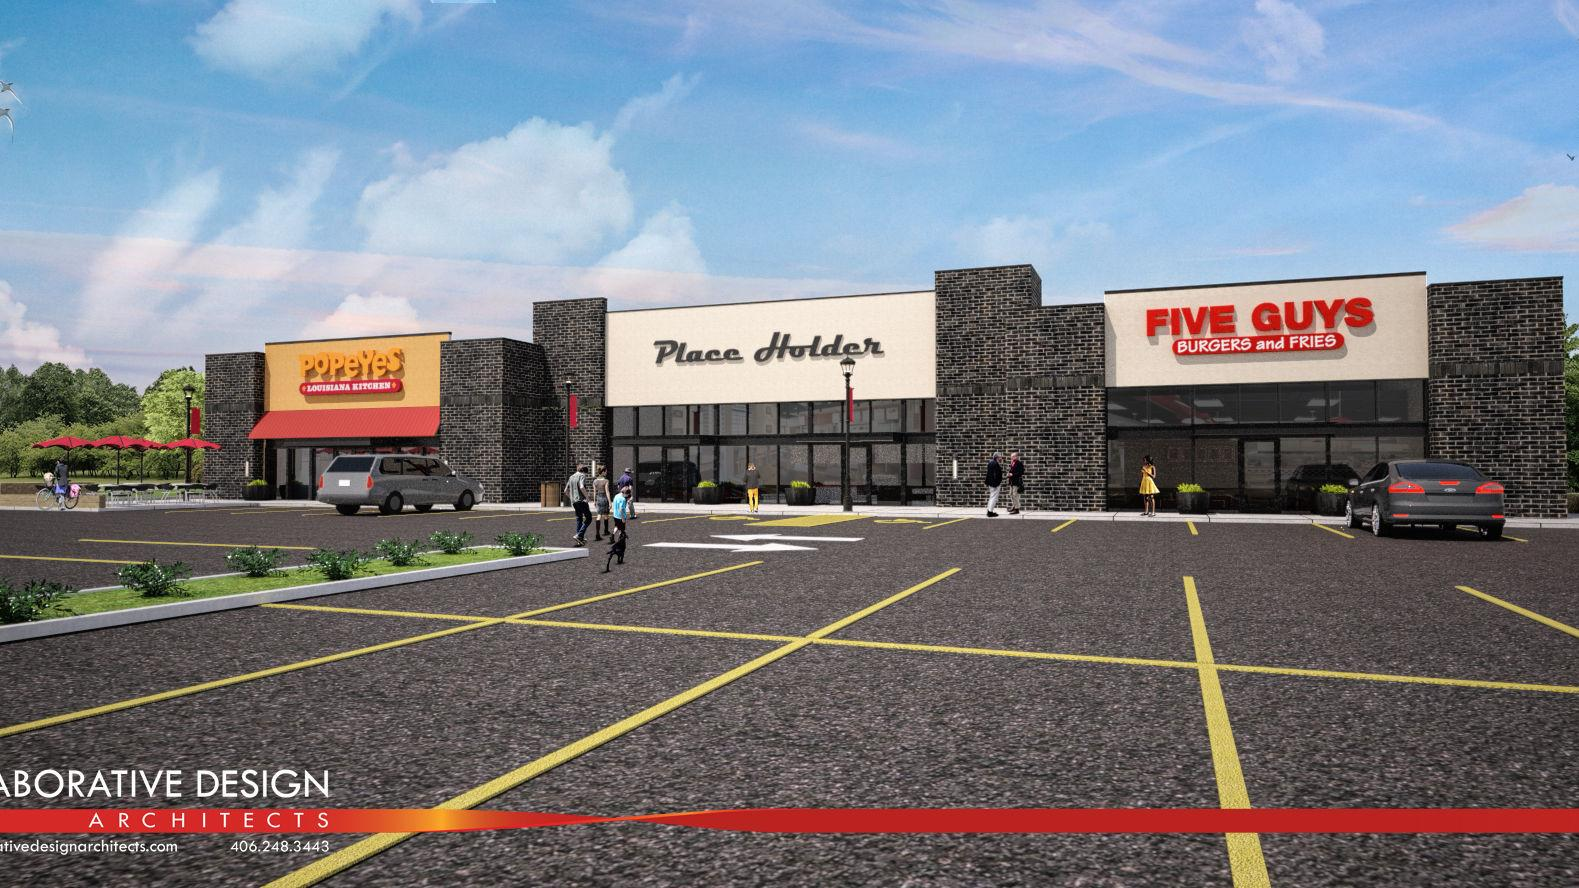 Popeyes Louisiana Kitchen Building five guys burgers, popeyes coming to shiloh crossing in billings